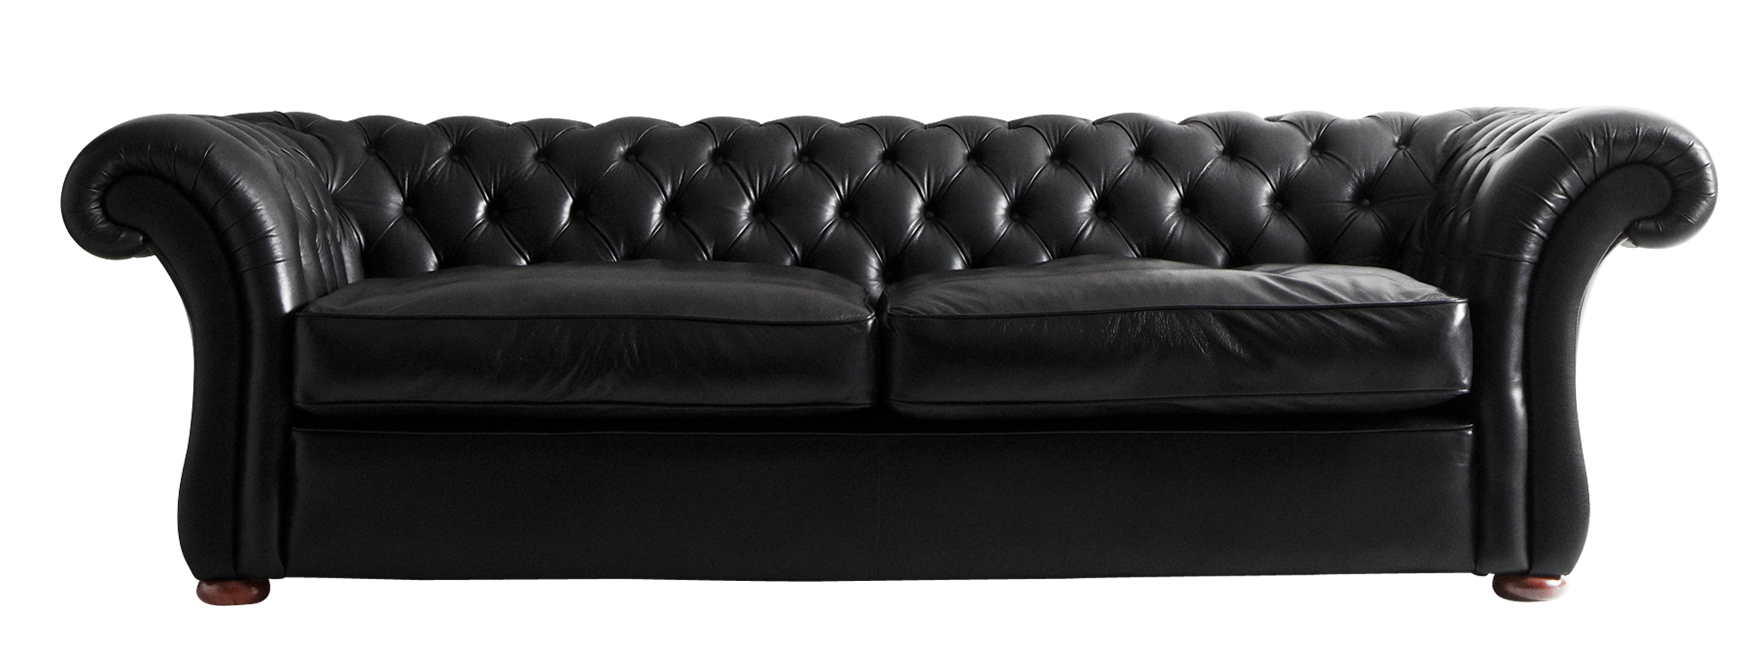 Couch png. Sofa image purepng free graphic royalty free library